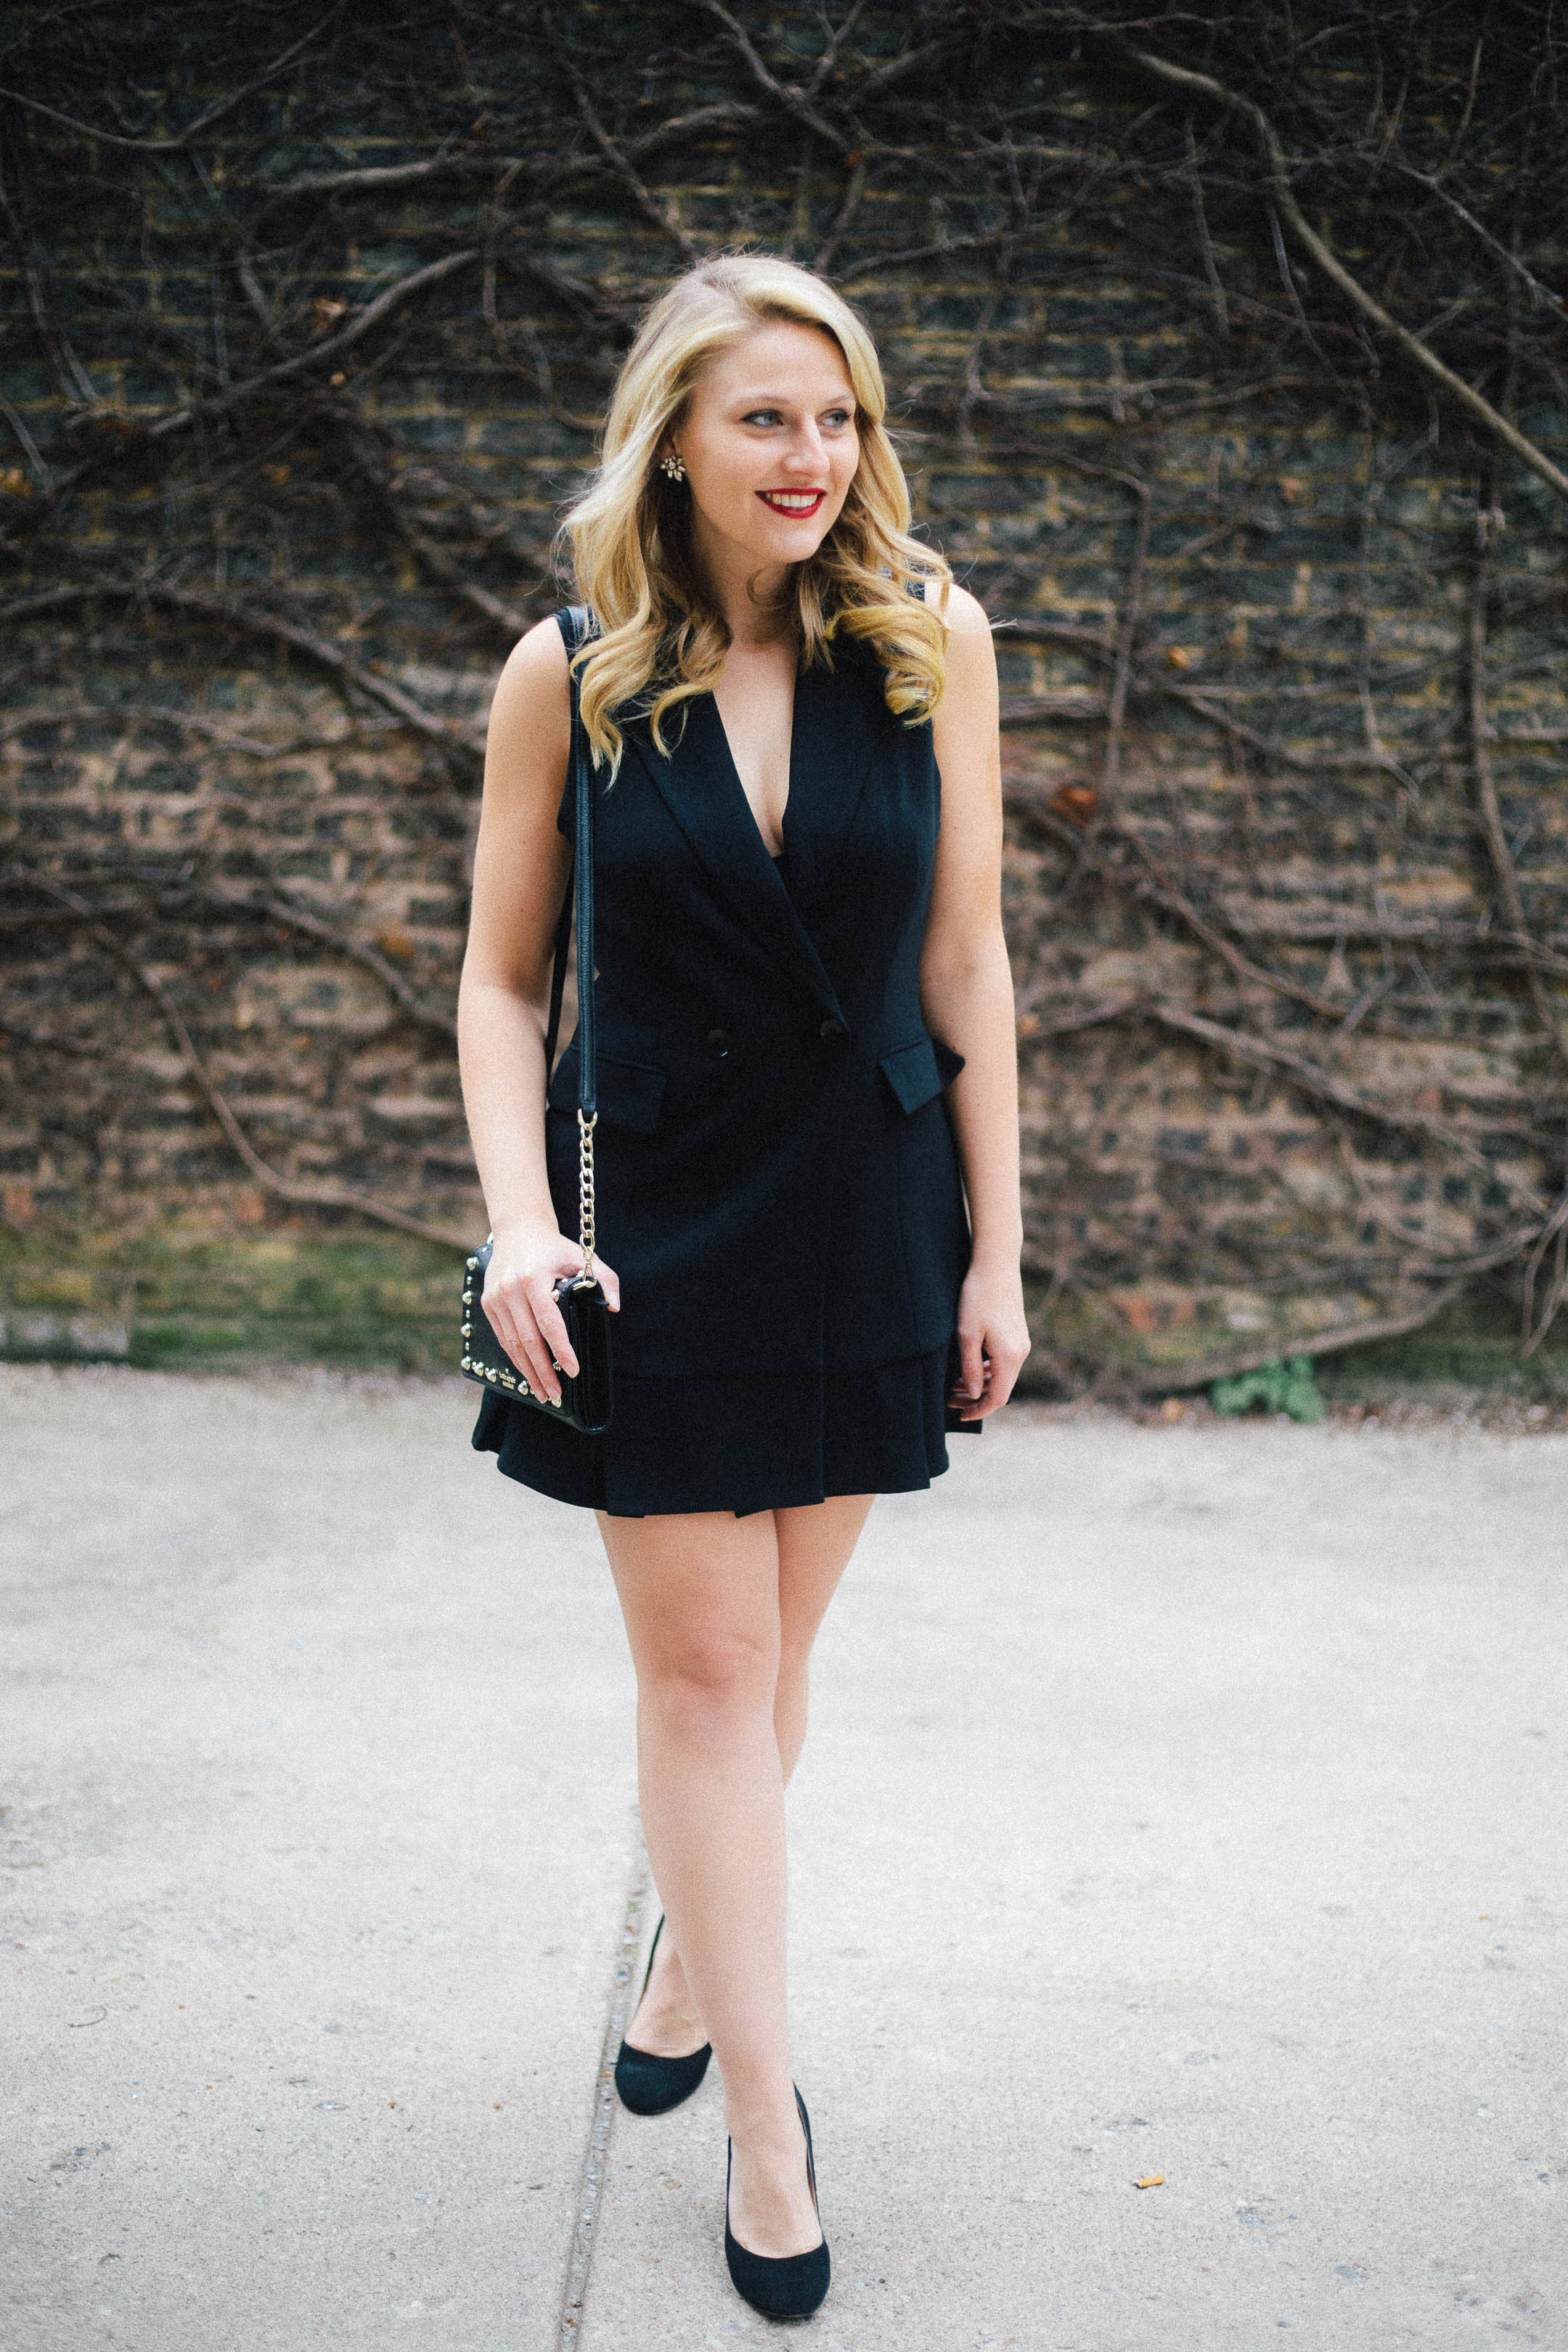 Every woman needs a black blazer dress this year